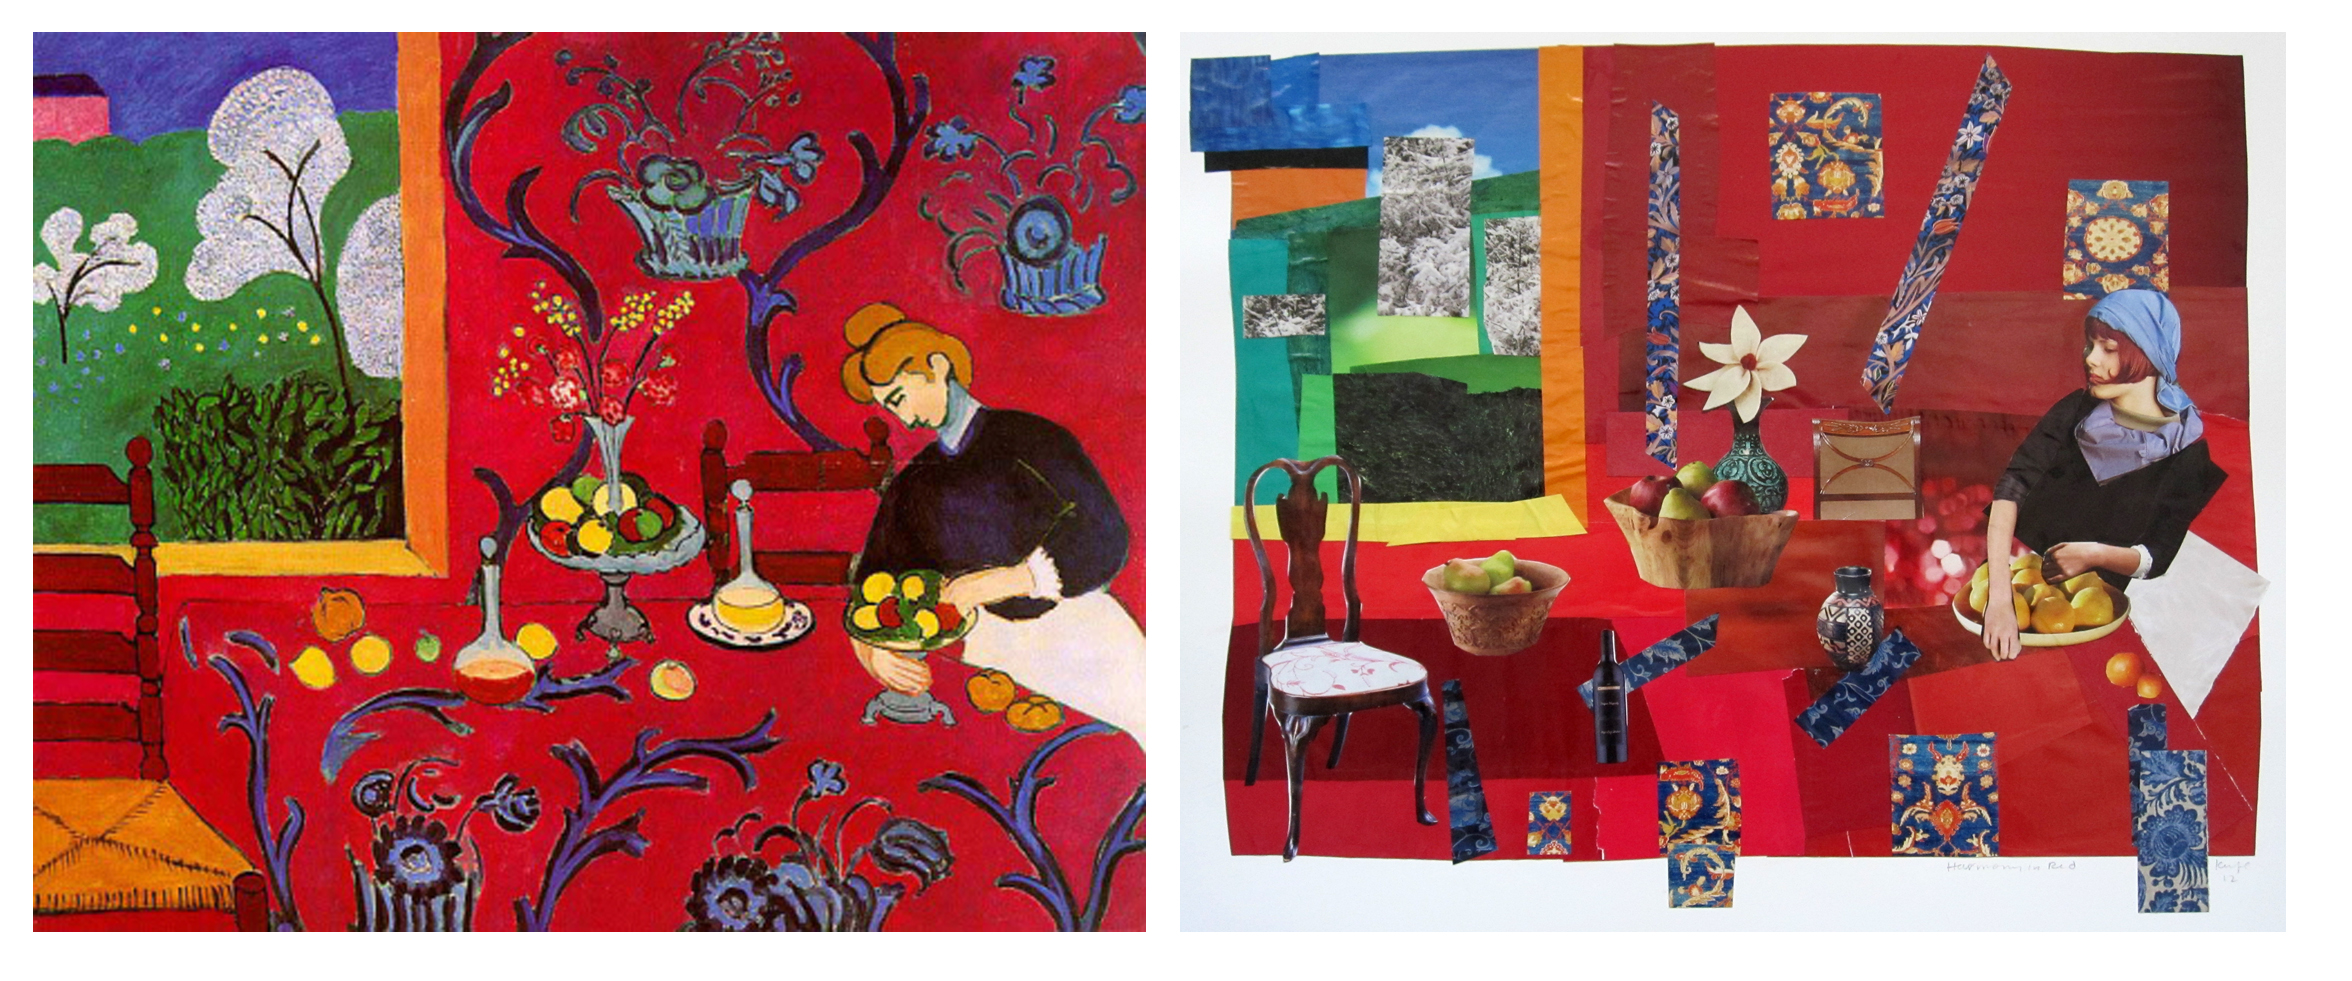 harmony in red henri matisse Online gallery and exhibitions, modernism, matisse, my studio the dessert: a harmony in red 1908 oil on canvas, 180x220cm the hermitage.